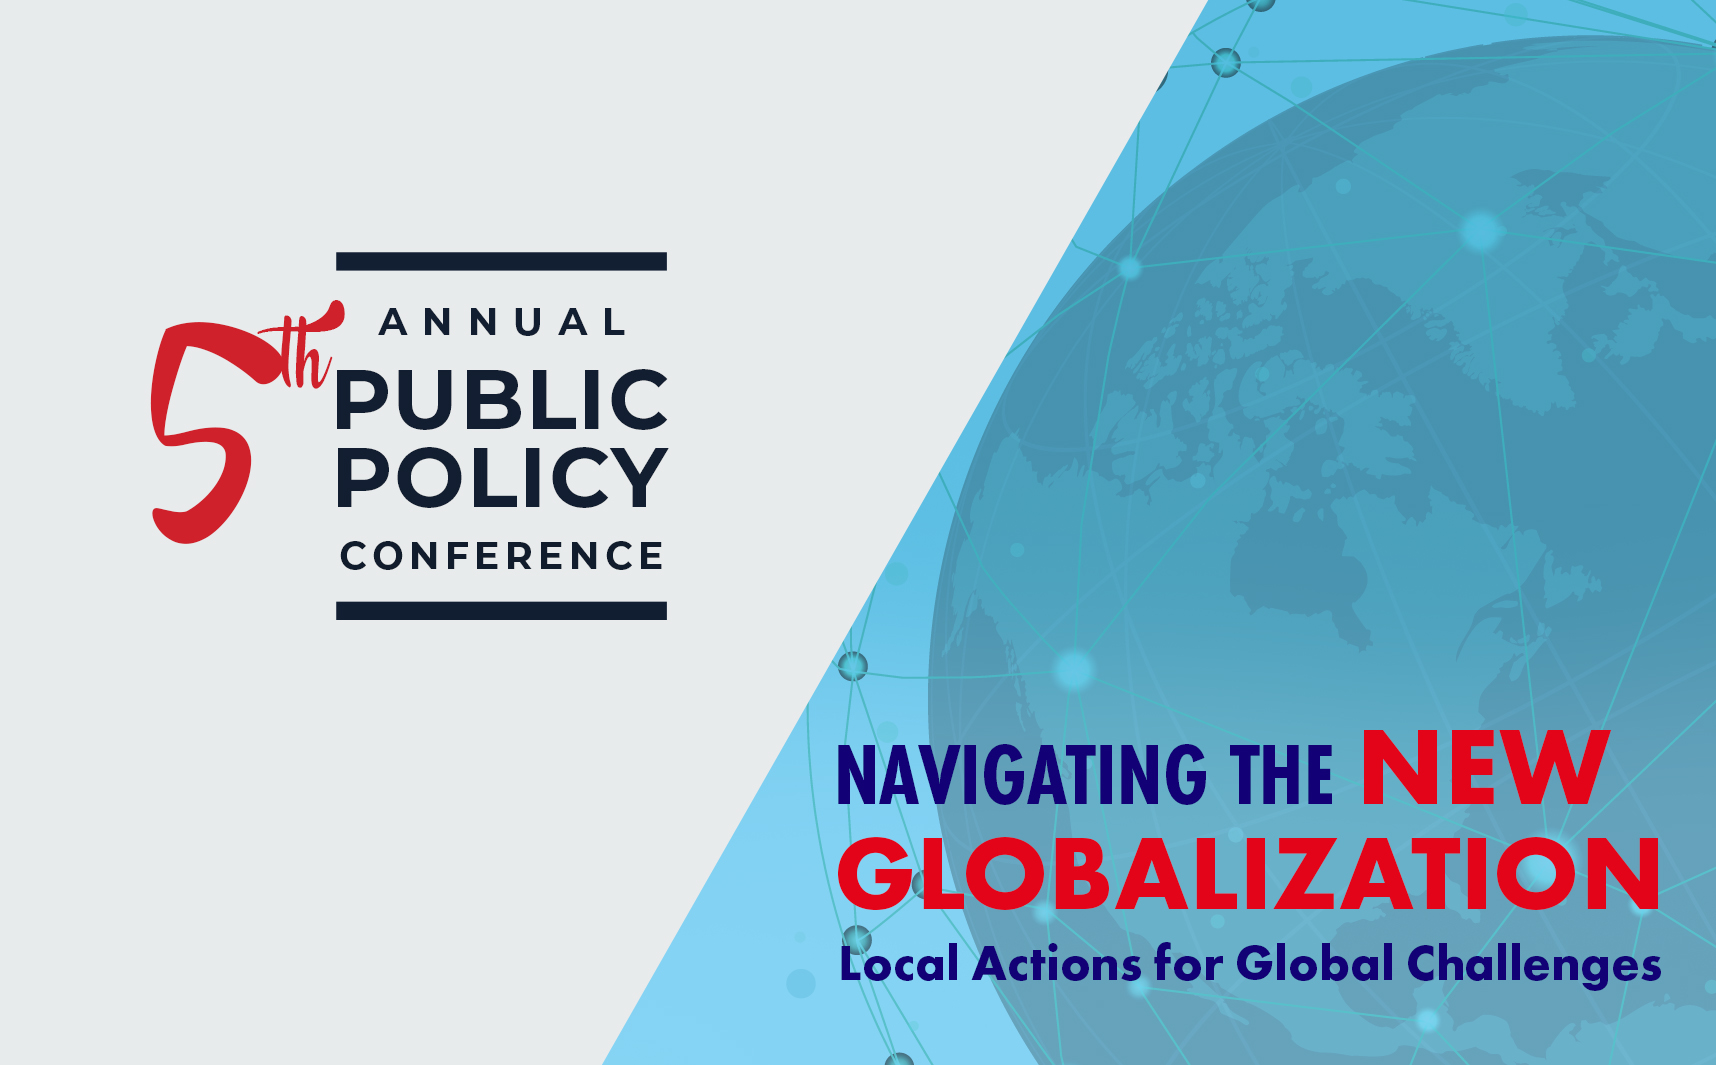 5th Annual Public Policy Conference